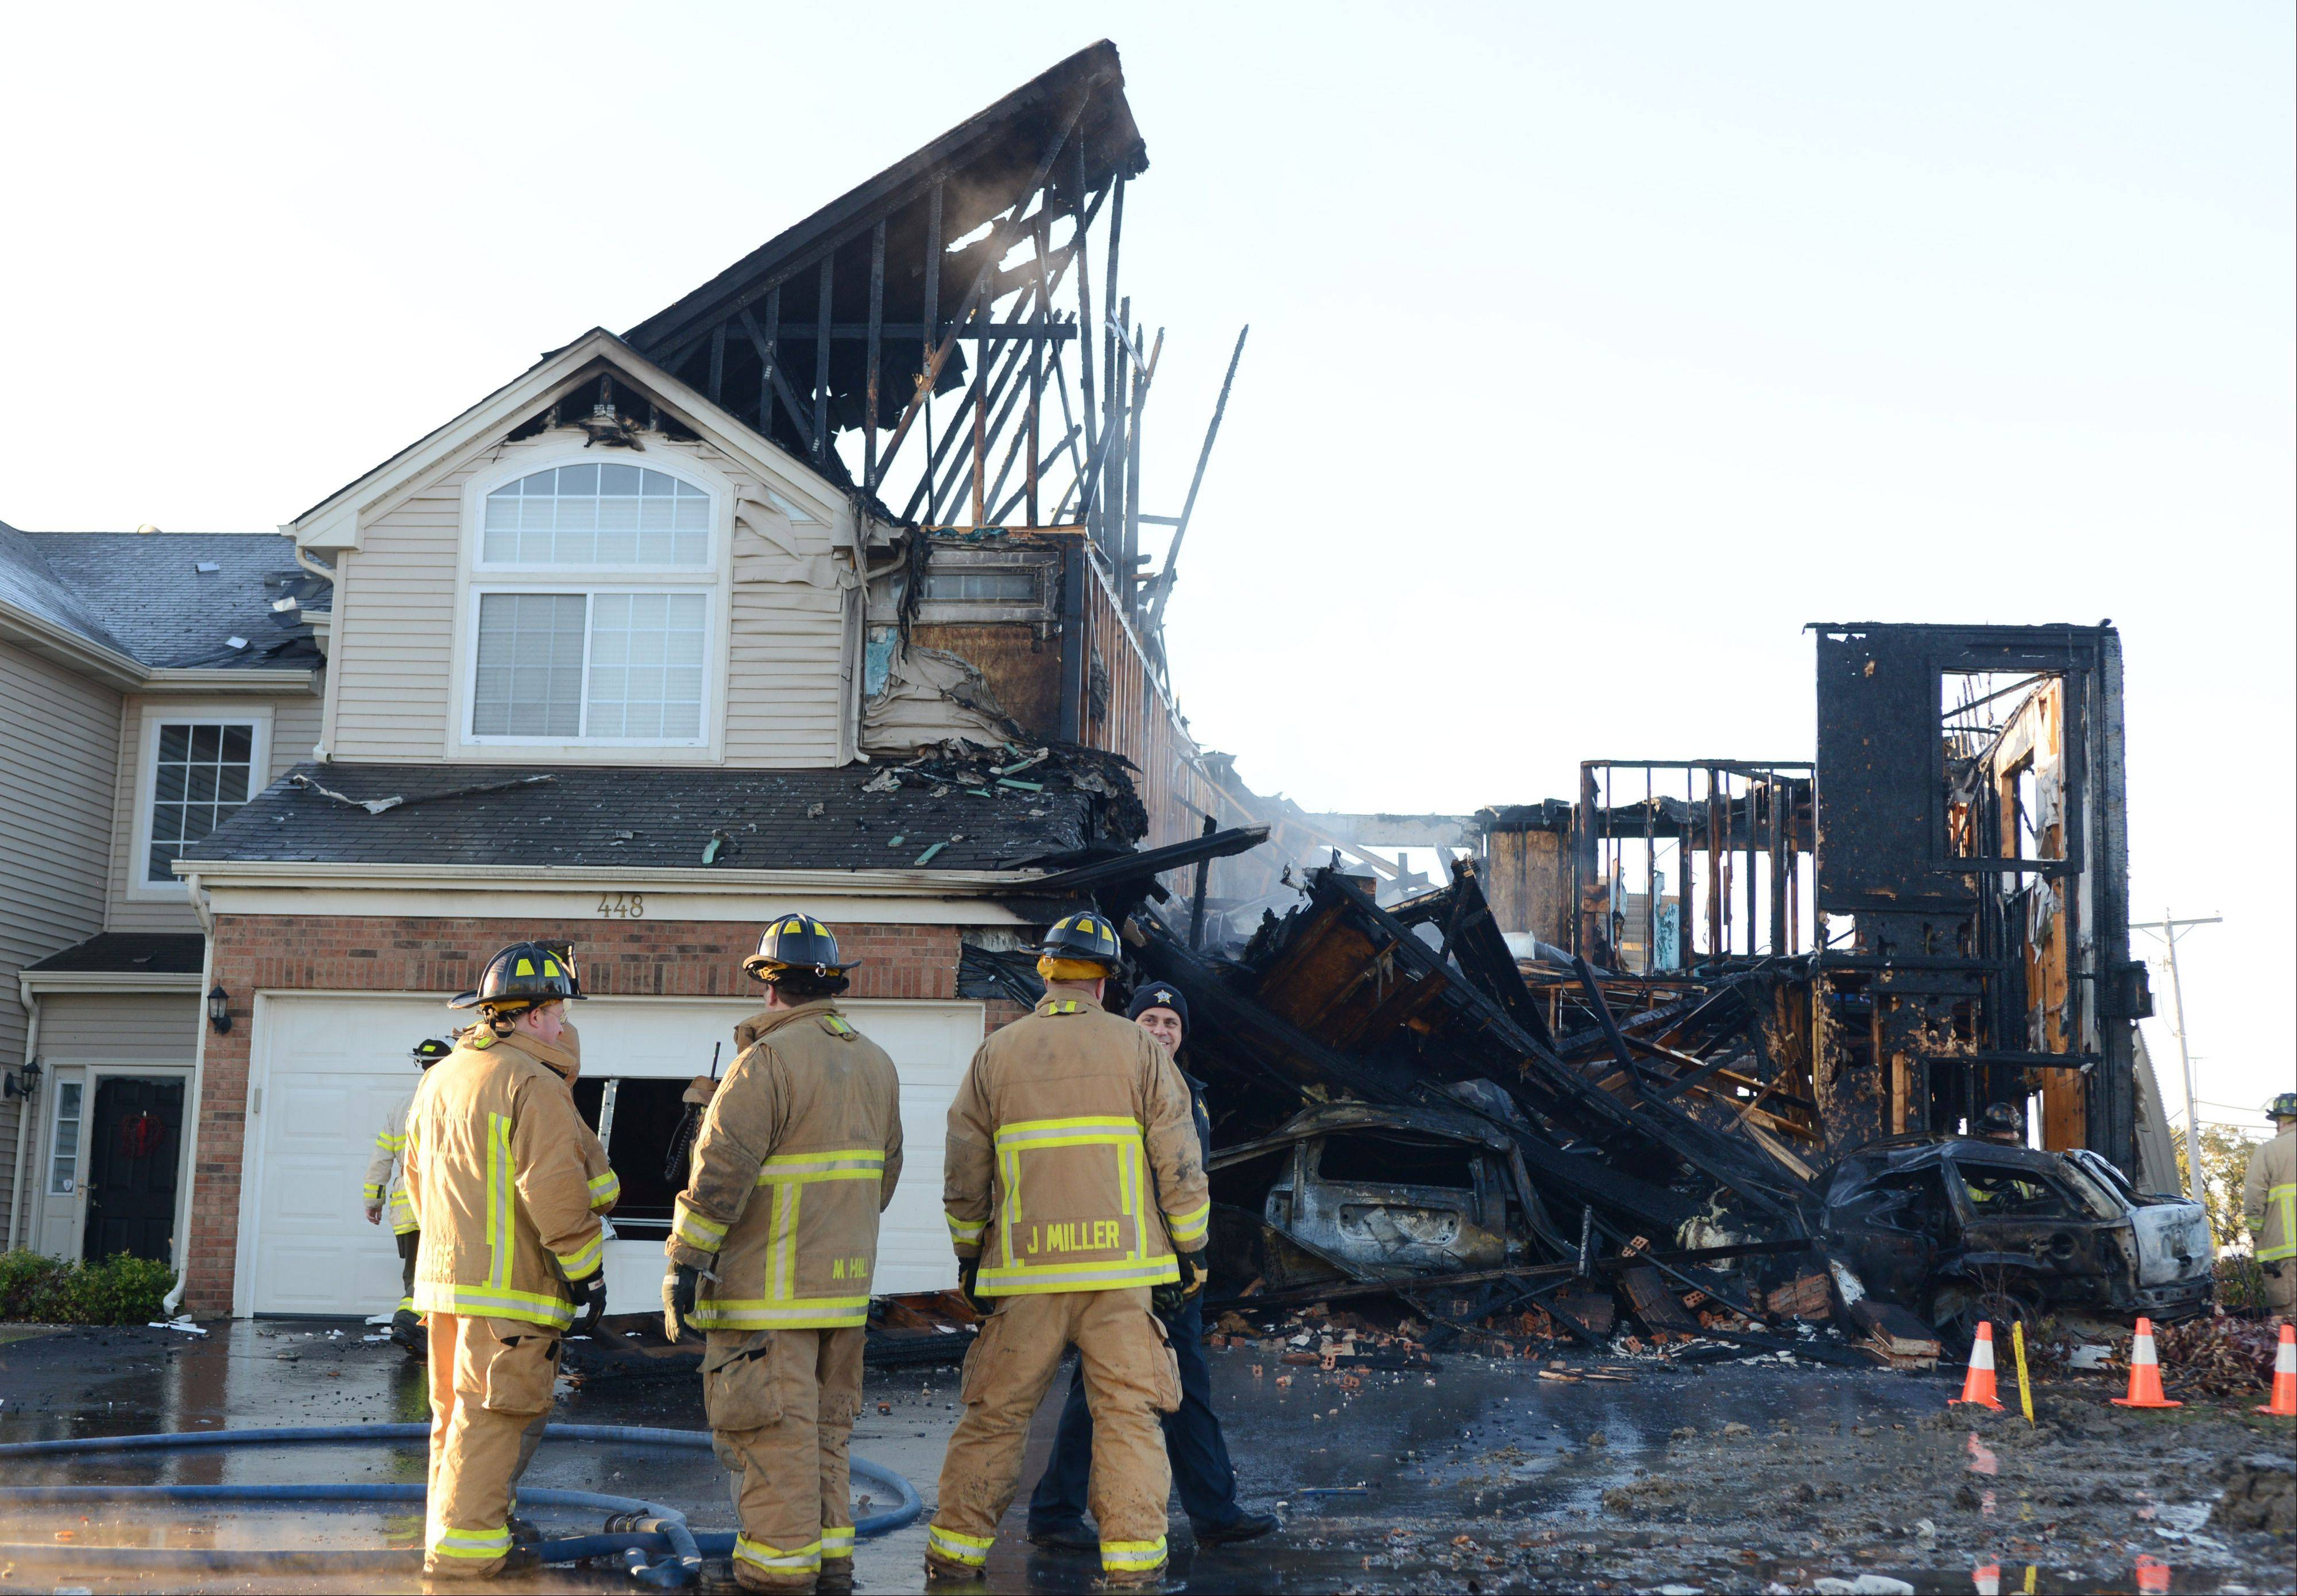 A Hainesville townhouse was destroyed by fire after a car crashed into it early Friday morning.